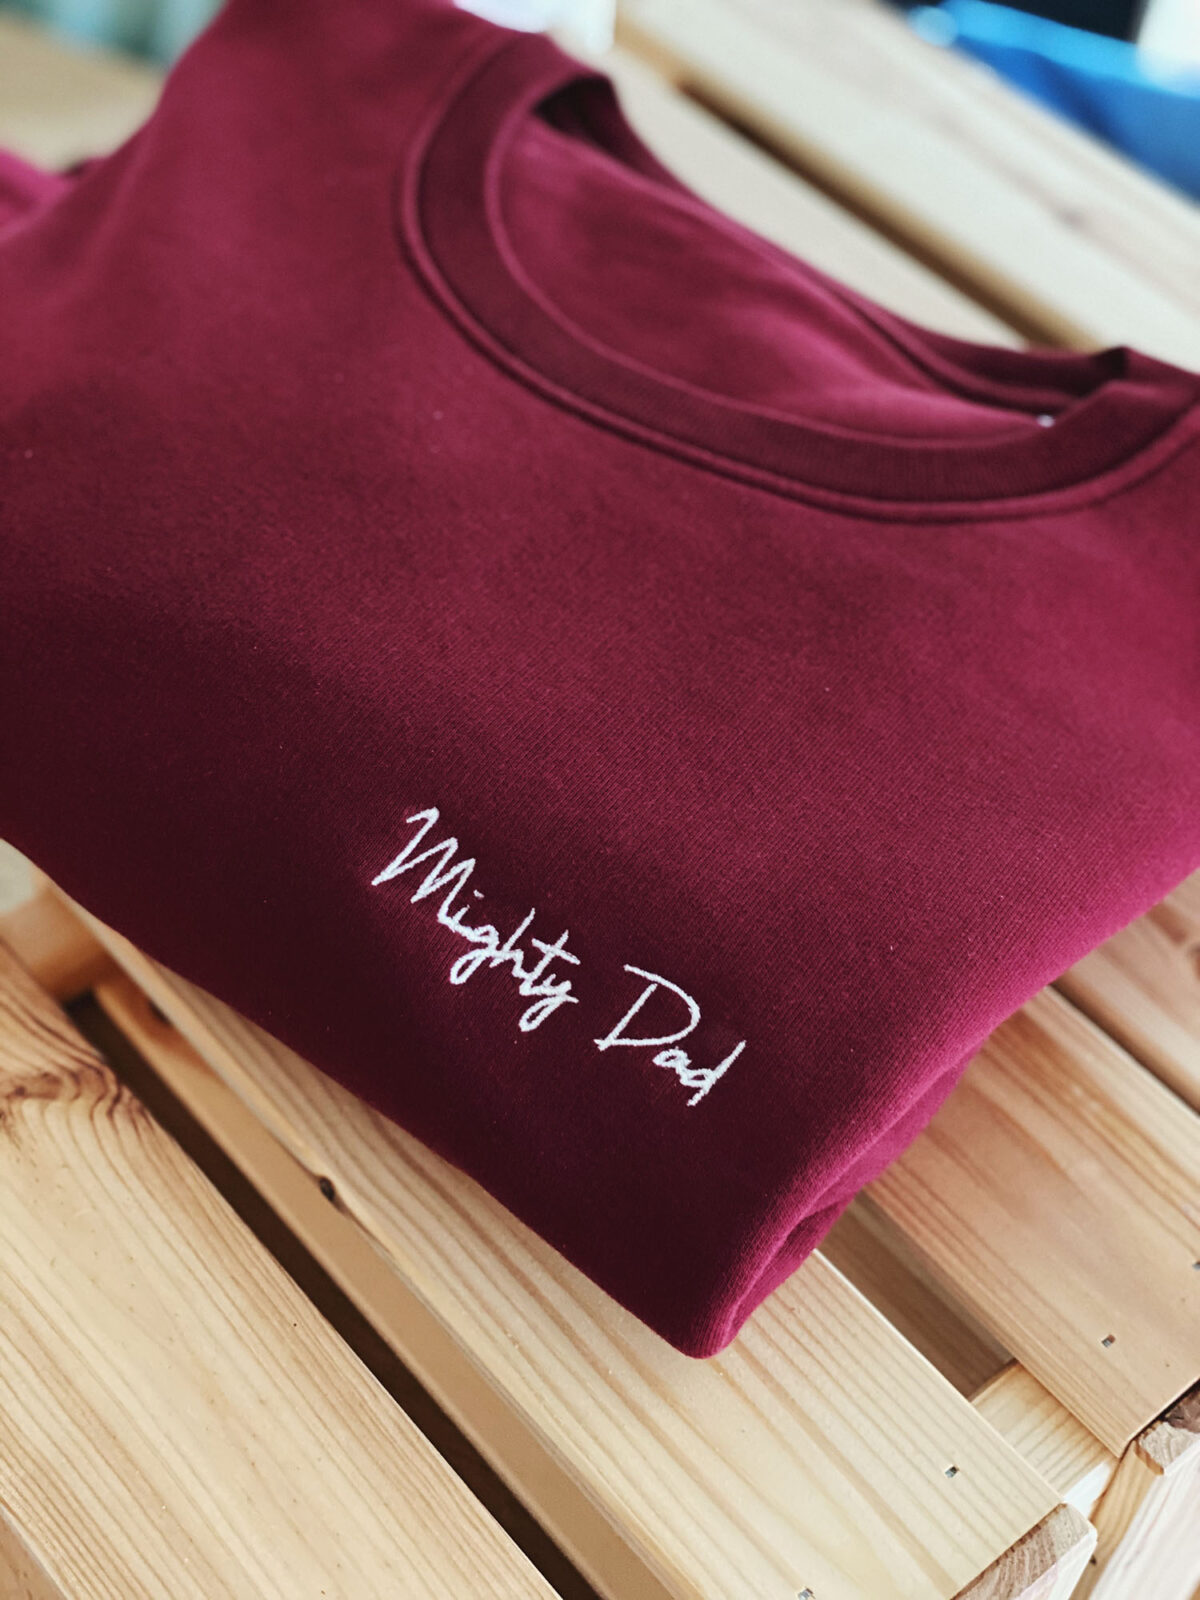 Mighty Dad sweater by Mangos on Monday